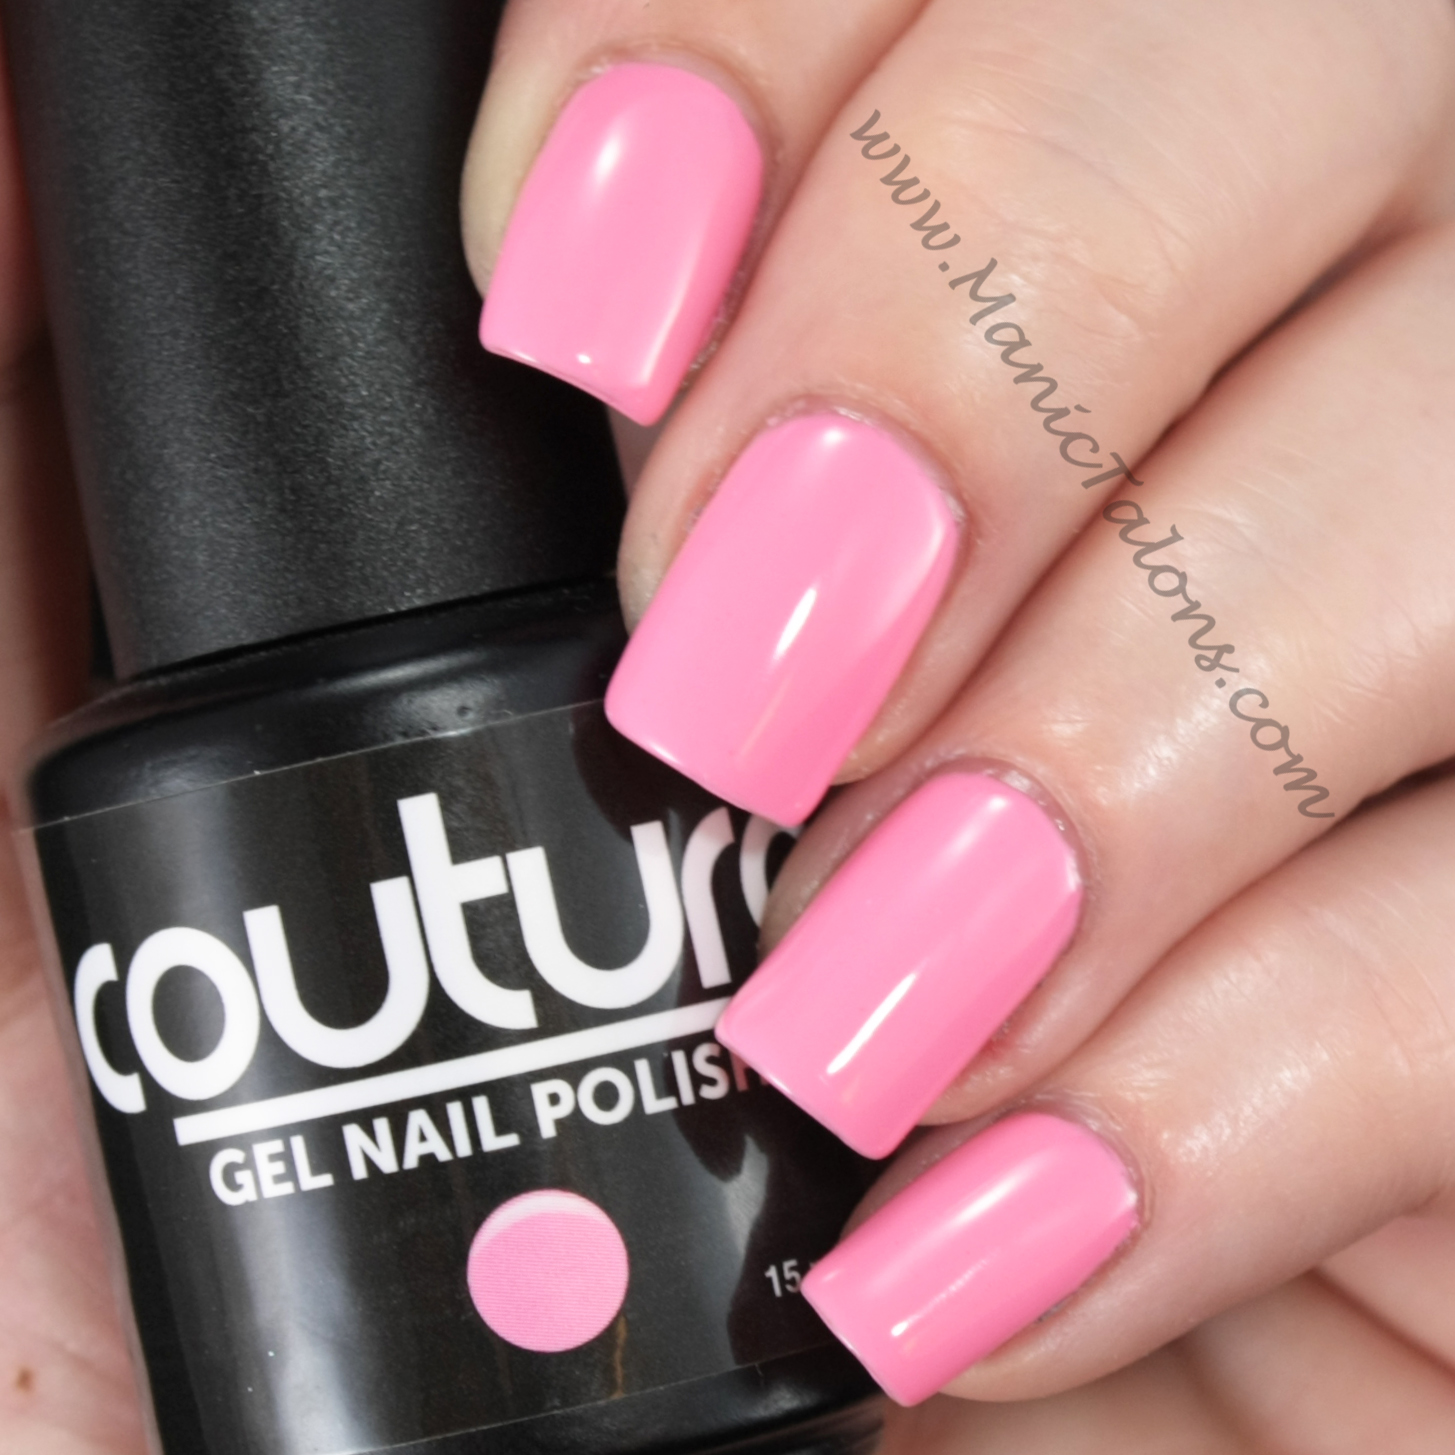 Couture Gel Nail Polish Off the Shoulder Swatch